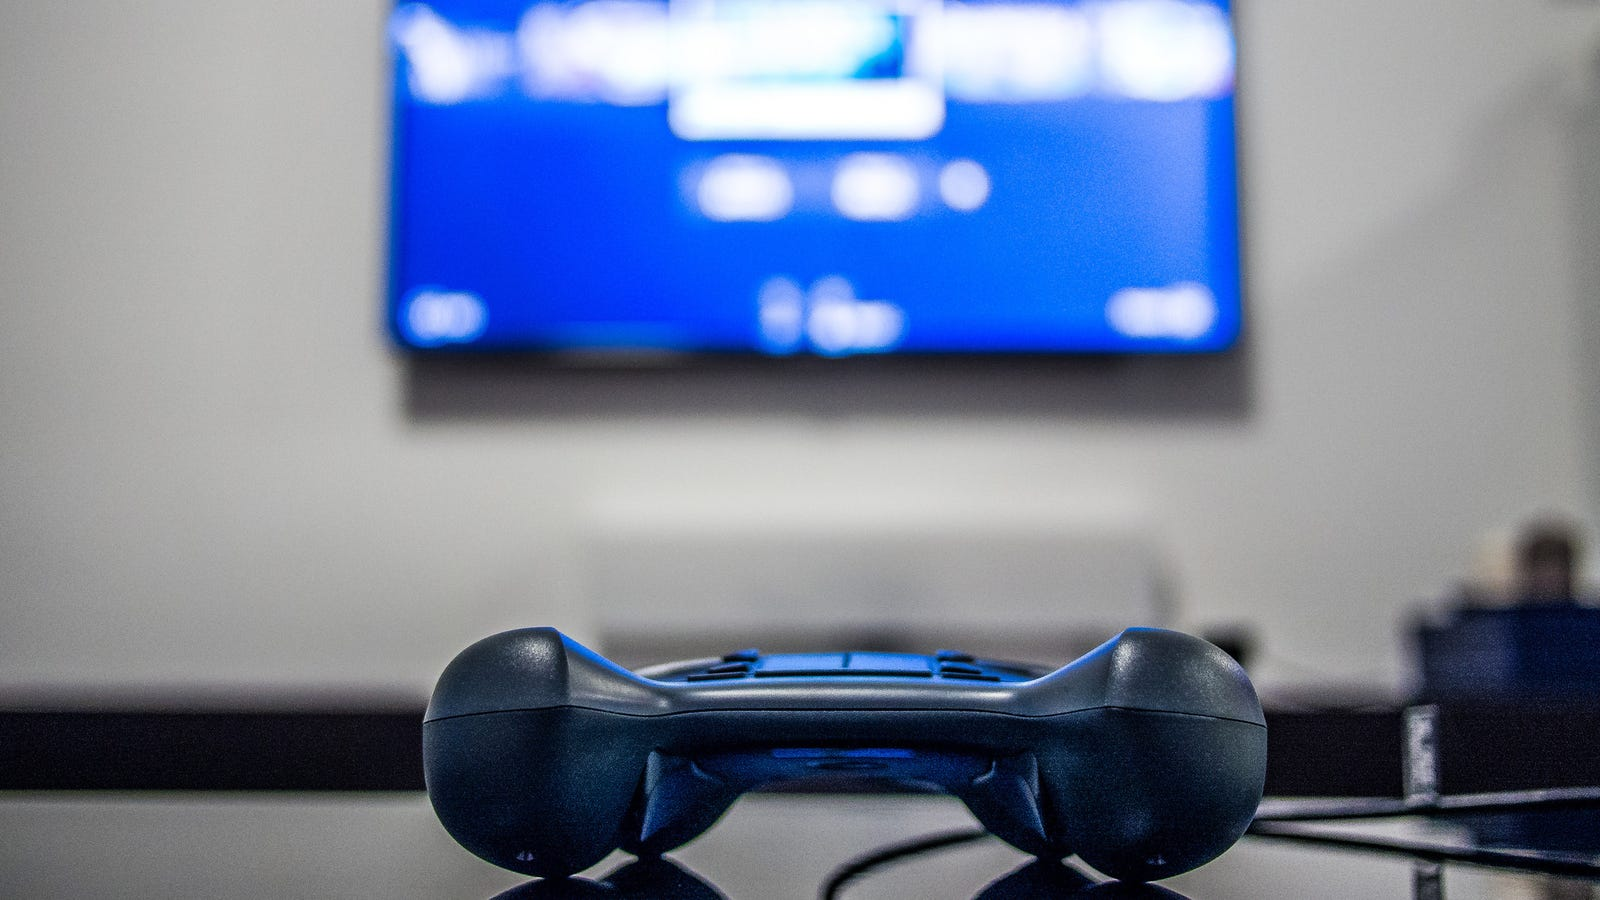 Use Steam to Stream Your Desktop Instead of Your Games